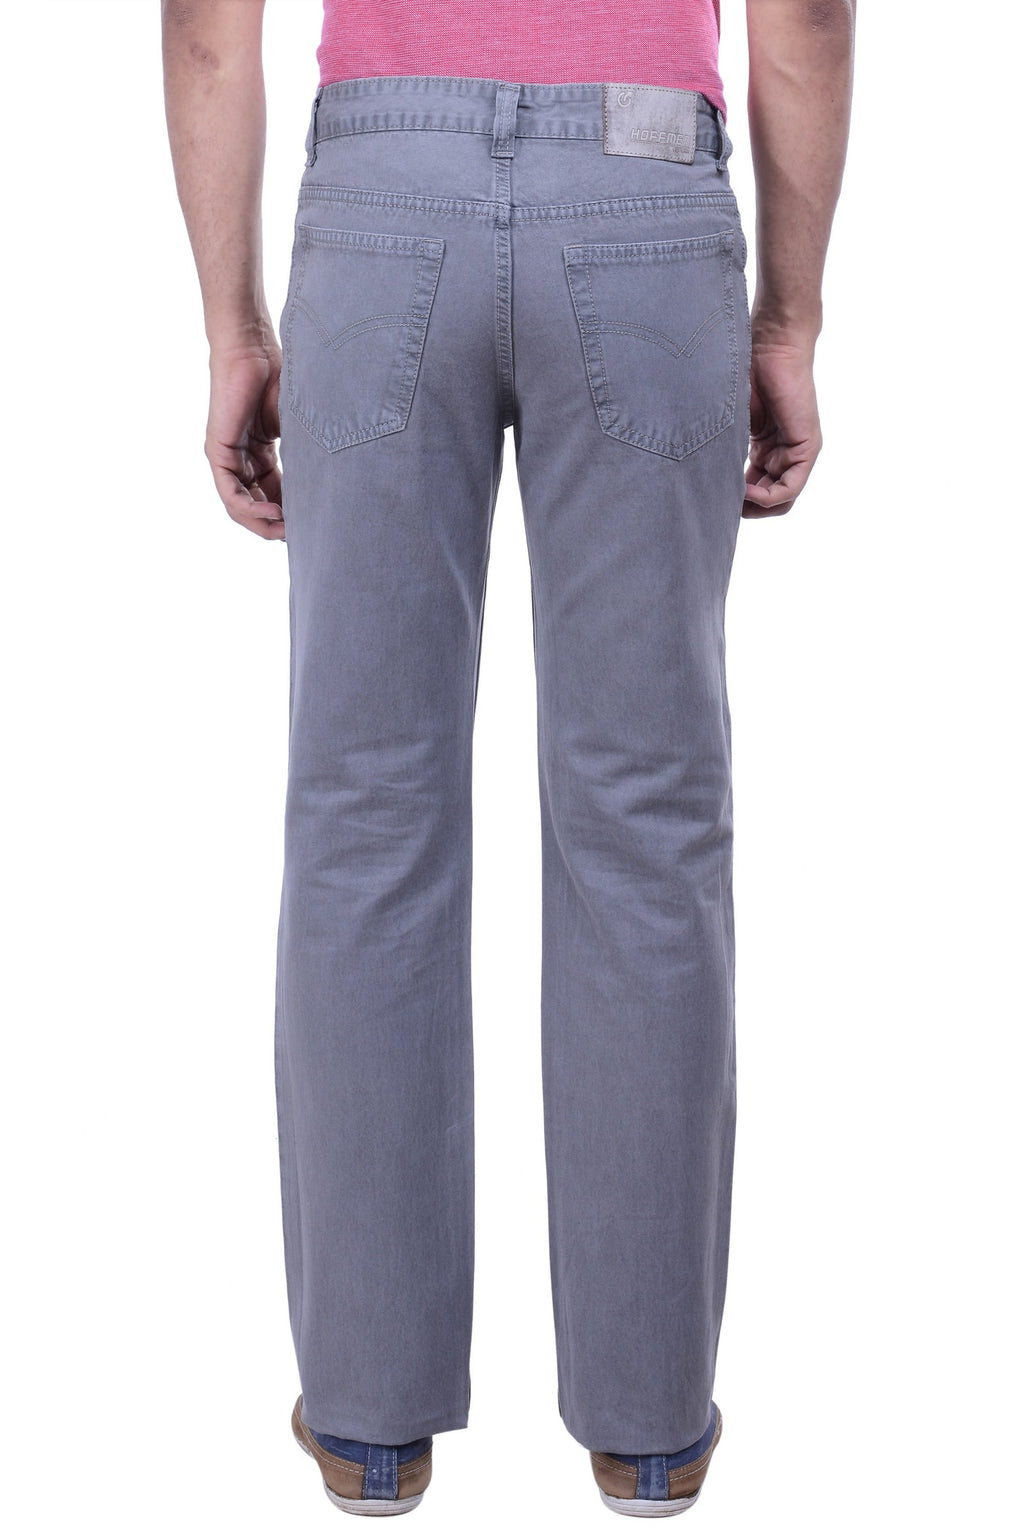 Hoffmen Regular Fit Moon Rock Silky Denim SDG2118